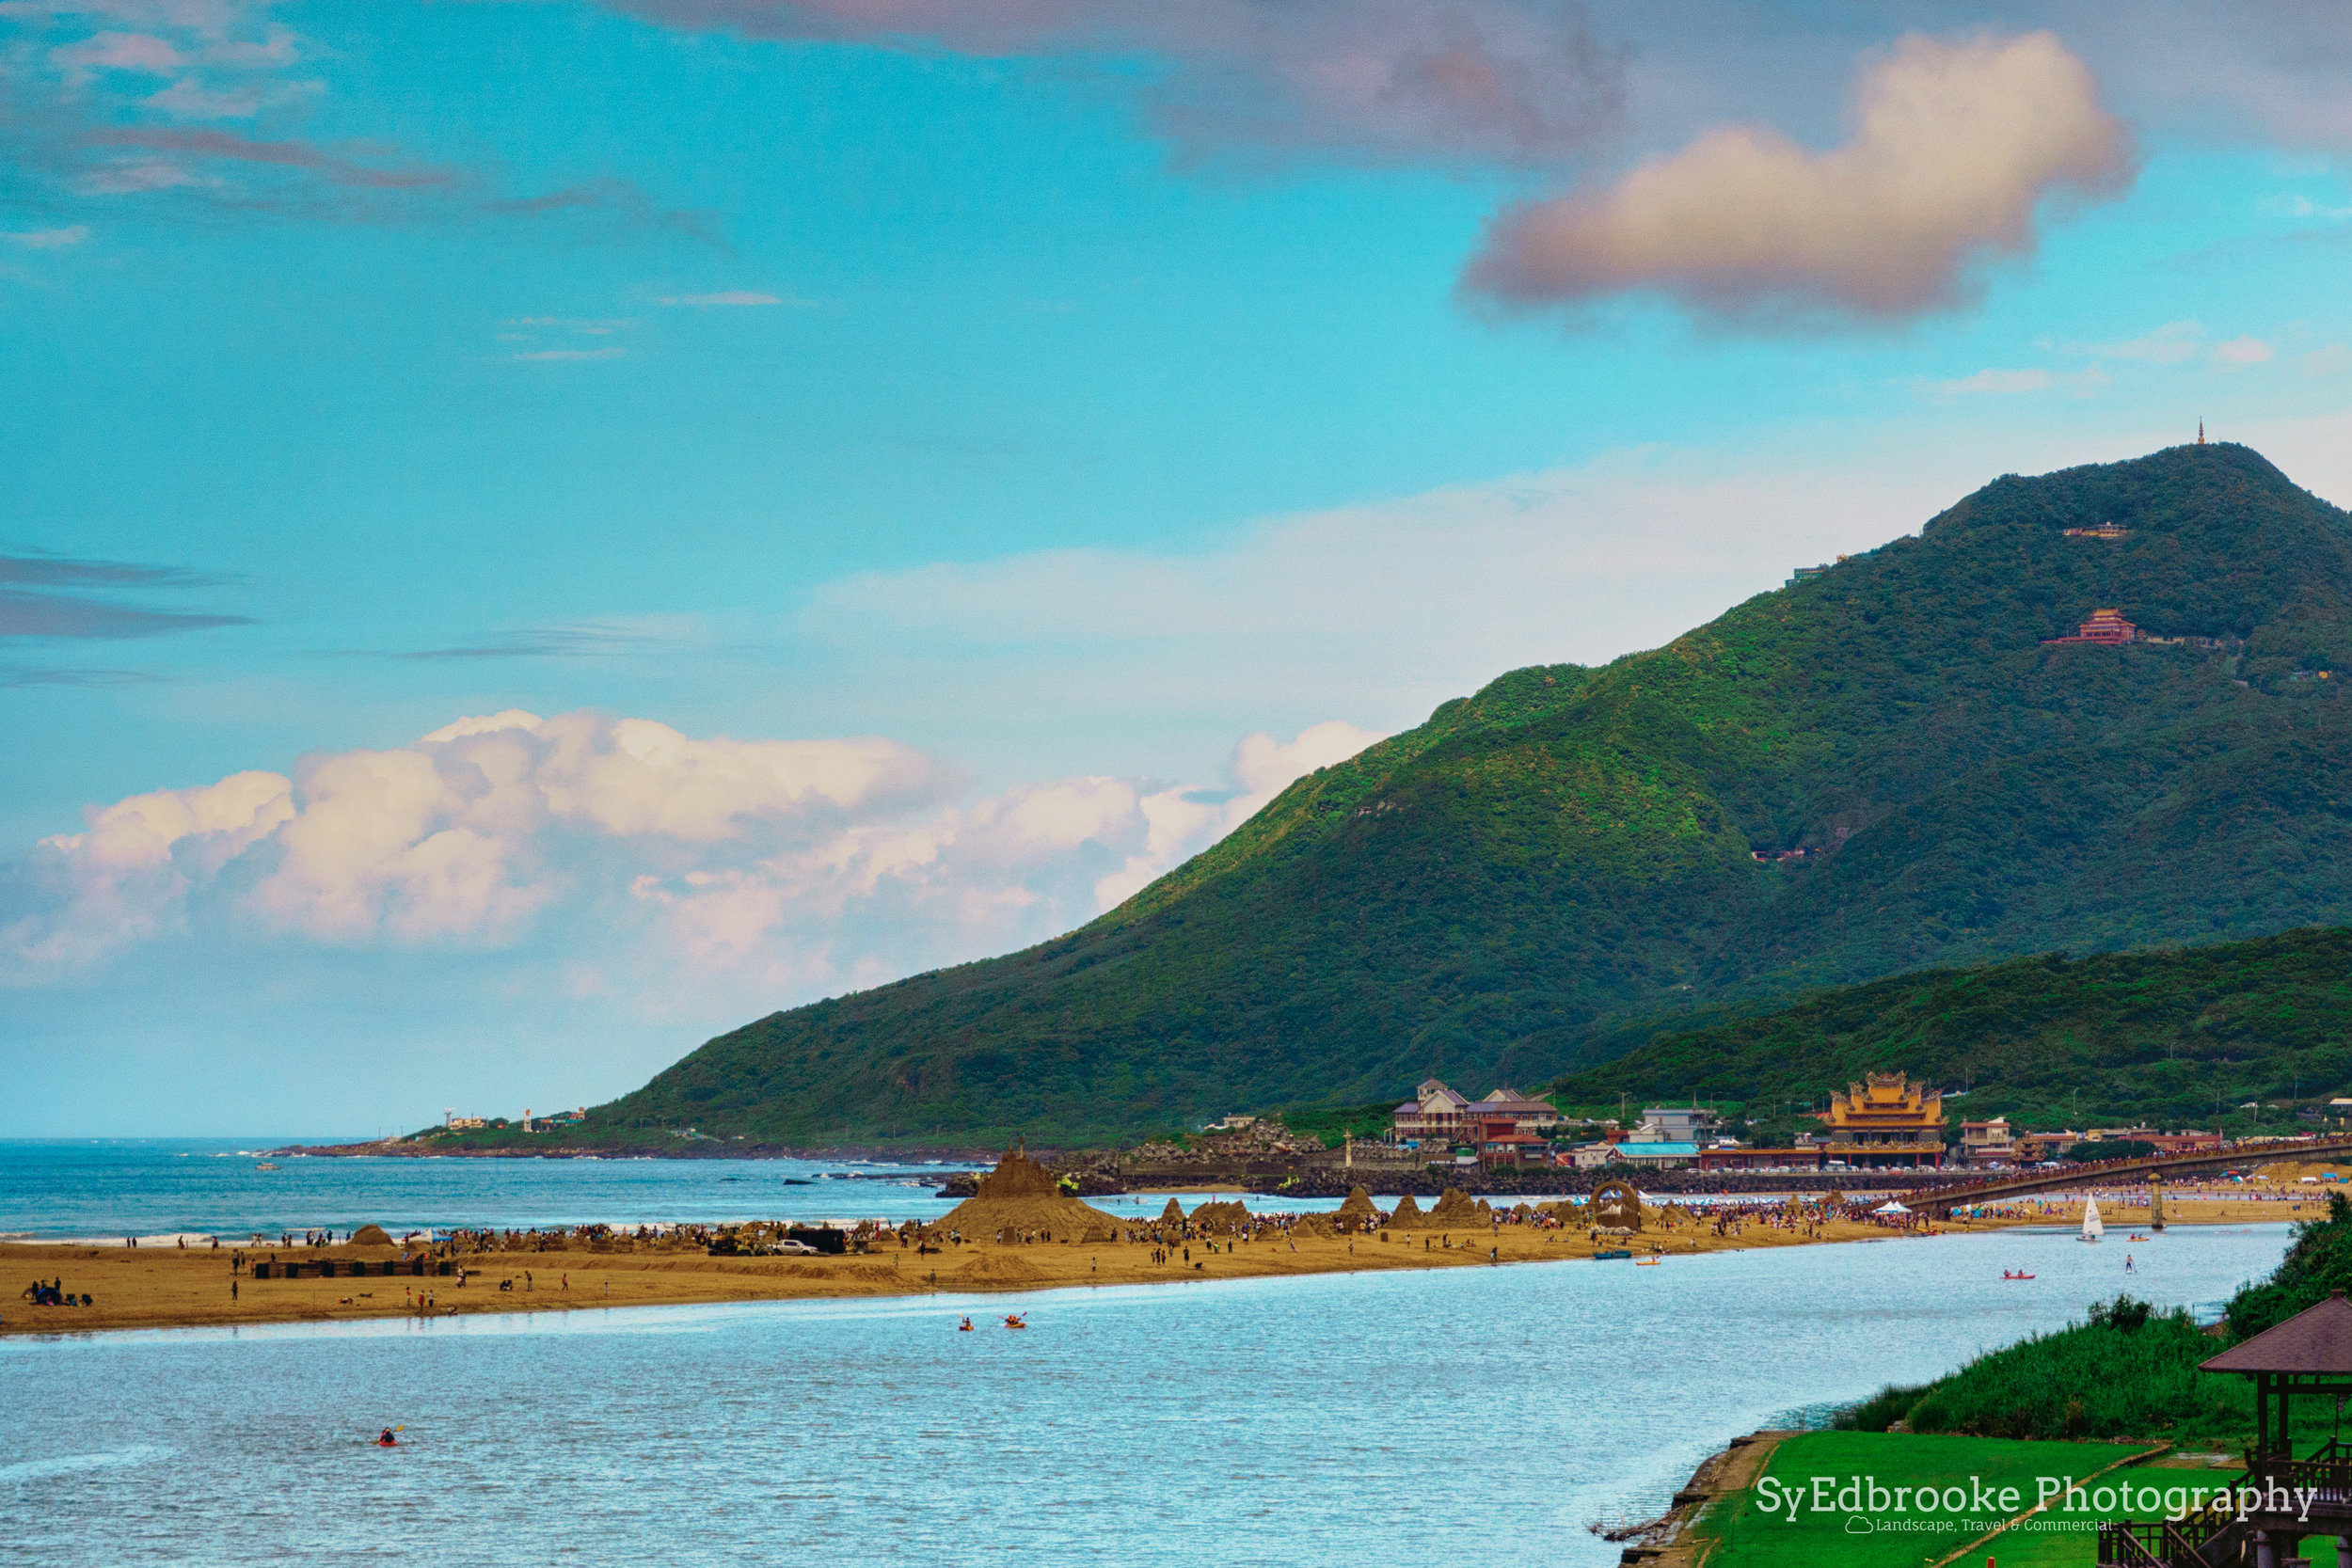 Looking towards Longmendiao towards Fulong. f10, ISO 200, 1/160, 100mm